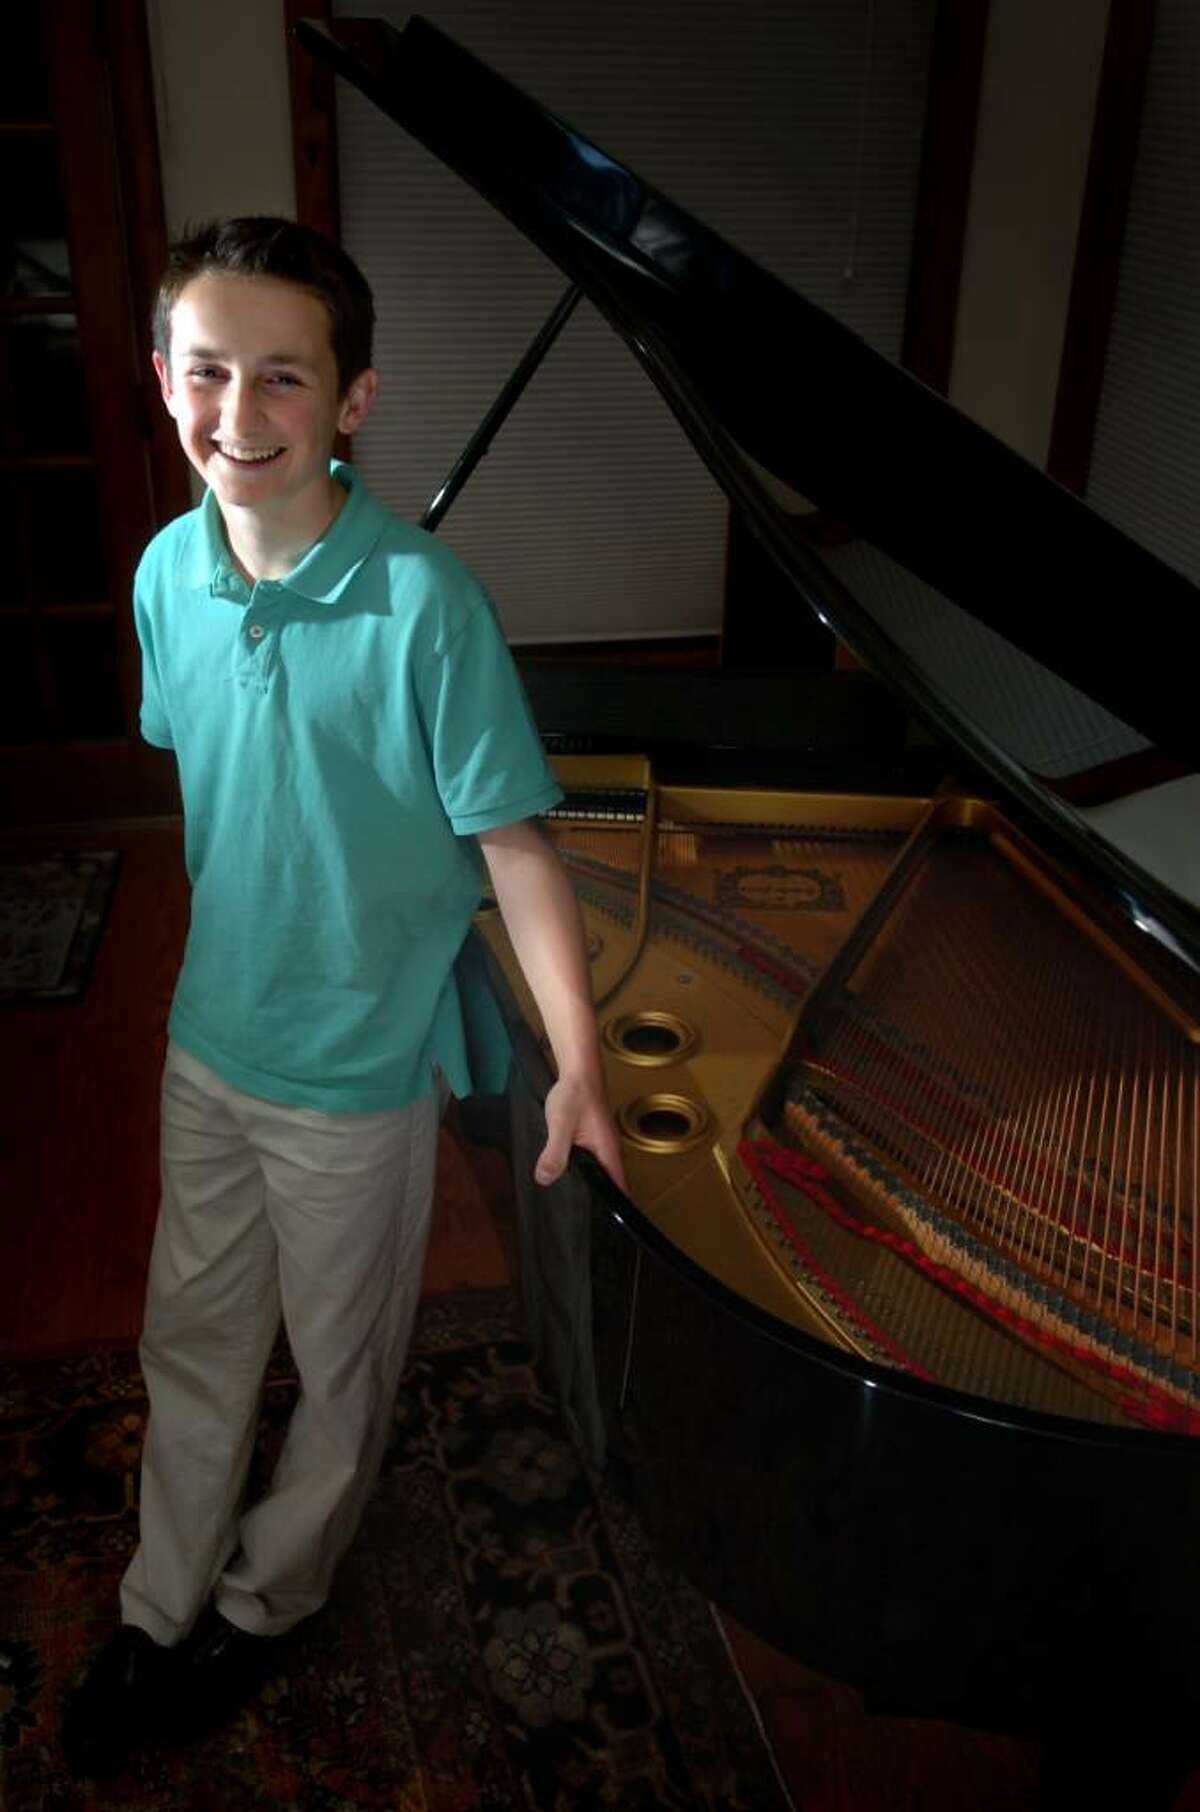 Fifteen-year-old Alex Beyer stands beside his piano in his Fairfield home. The young musician will make his professional debut with the Greater Bridgeport Symphony on Saturday Nov. 14, 2009.